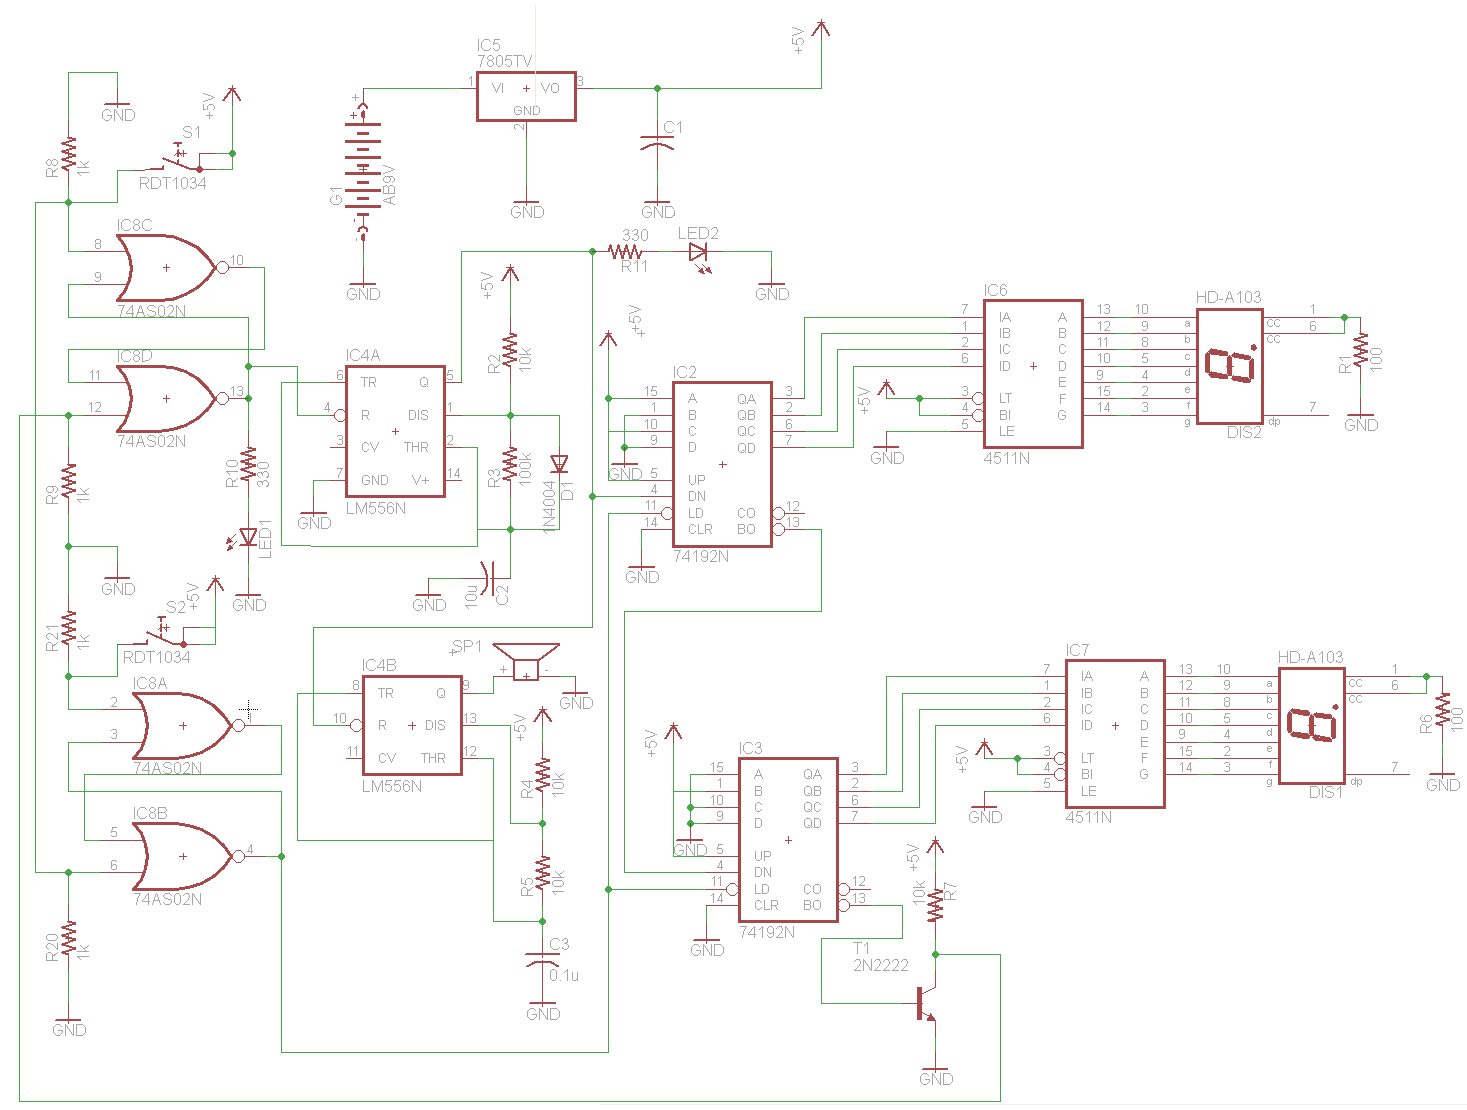 schematic lcd led display circuit page 6 digital circuits next gr Basic Electrical Wiring Diagrams at gsmx.co